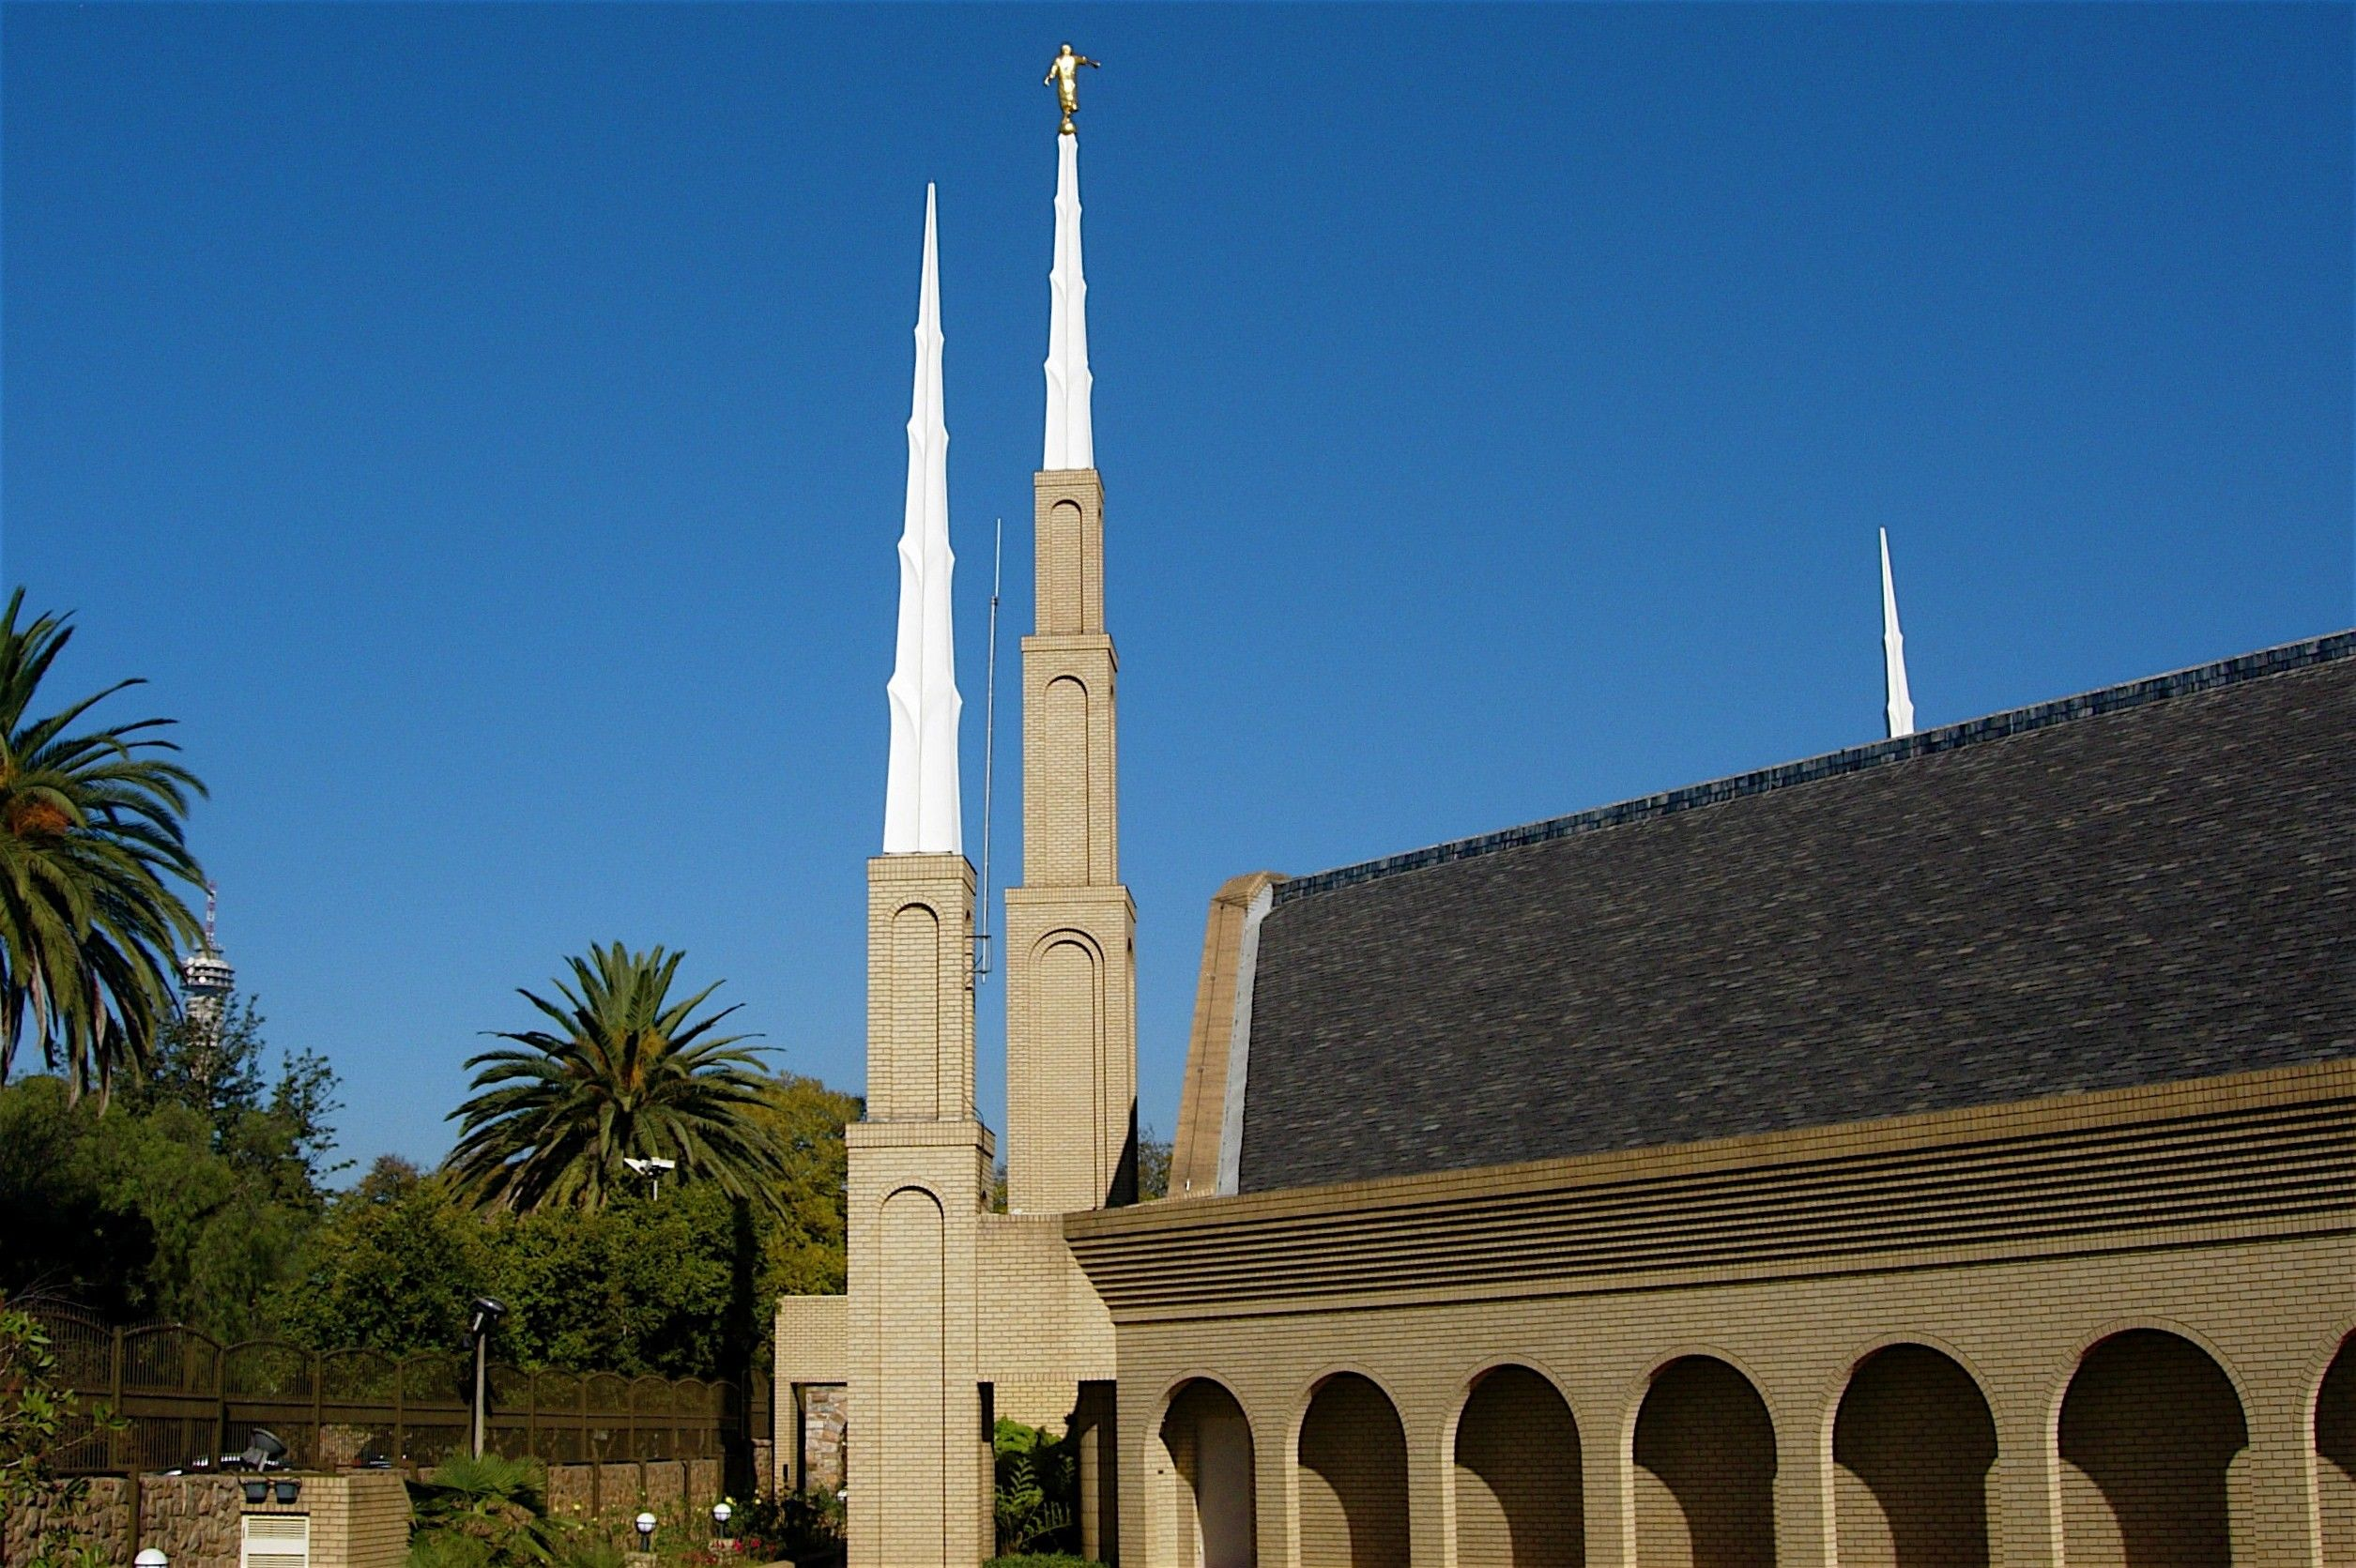 The Johannesburg South Africa Temple spires, including a side view of the temple and scenery.